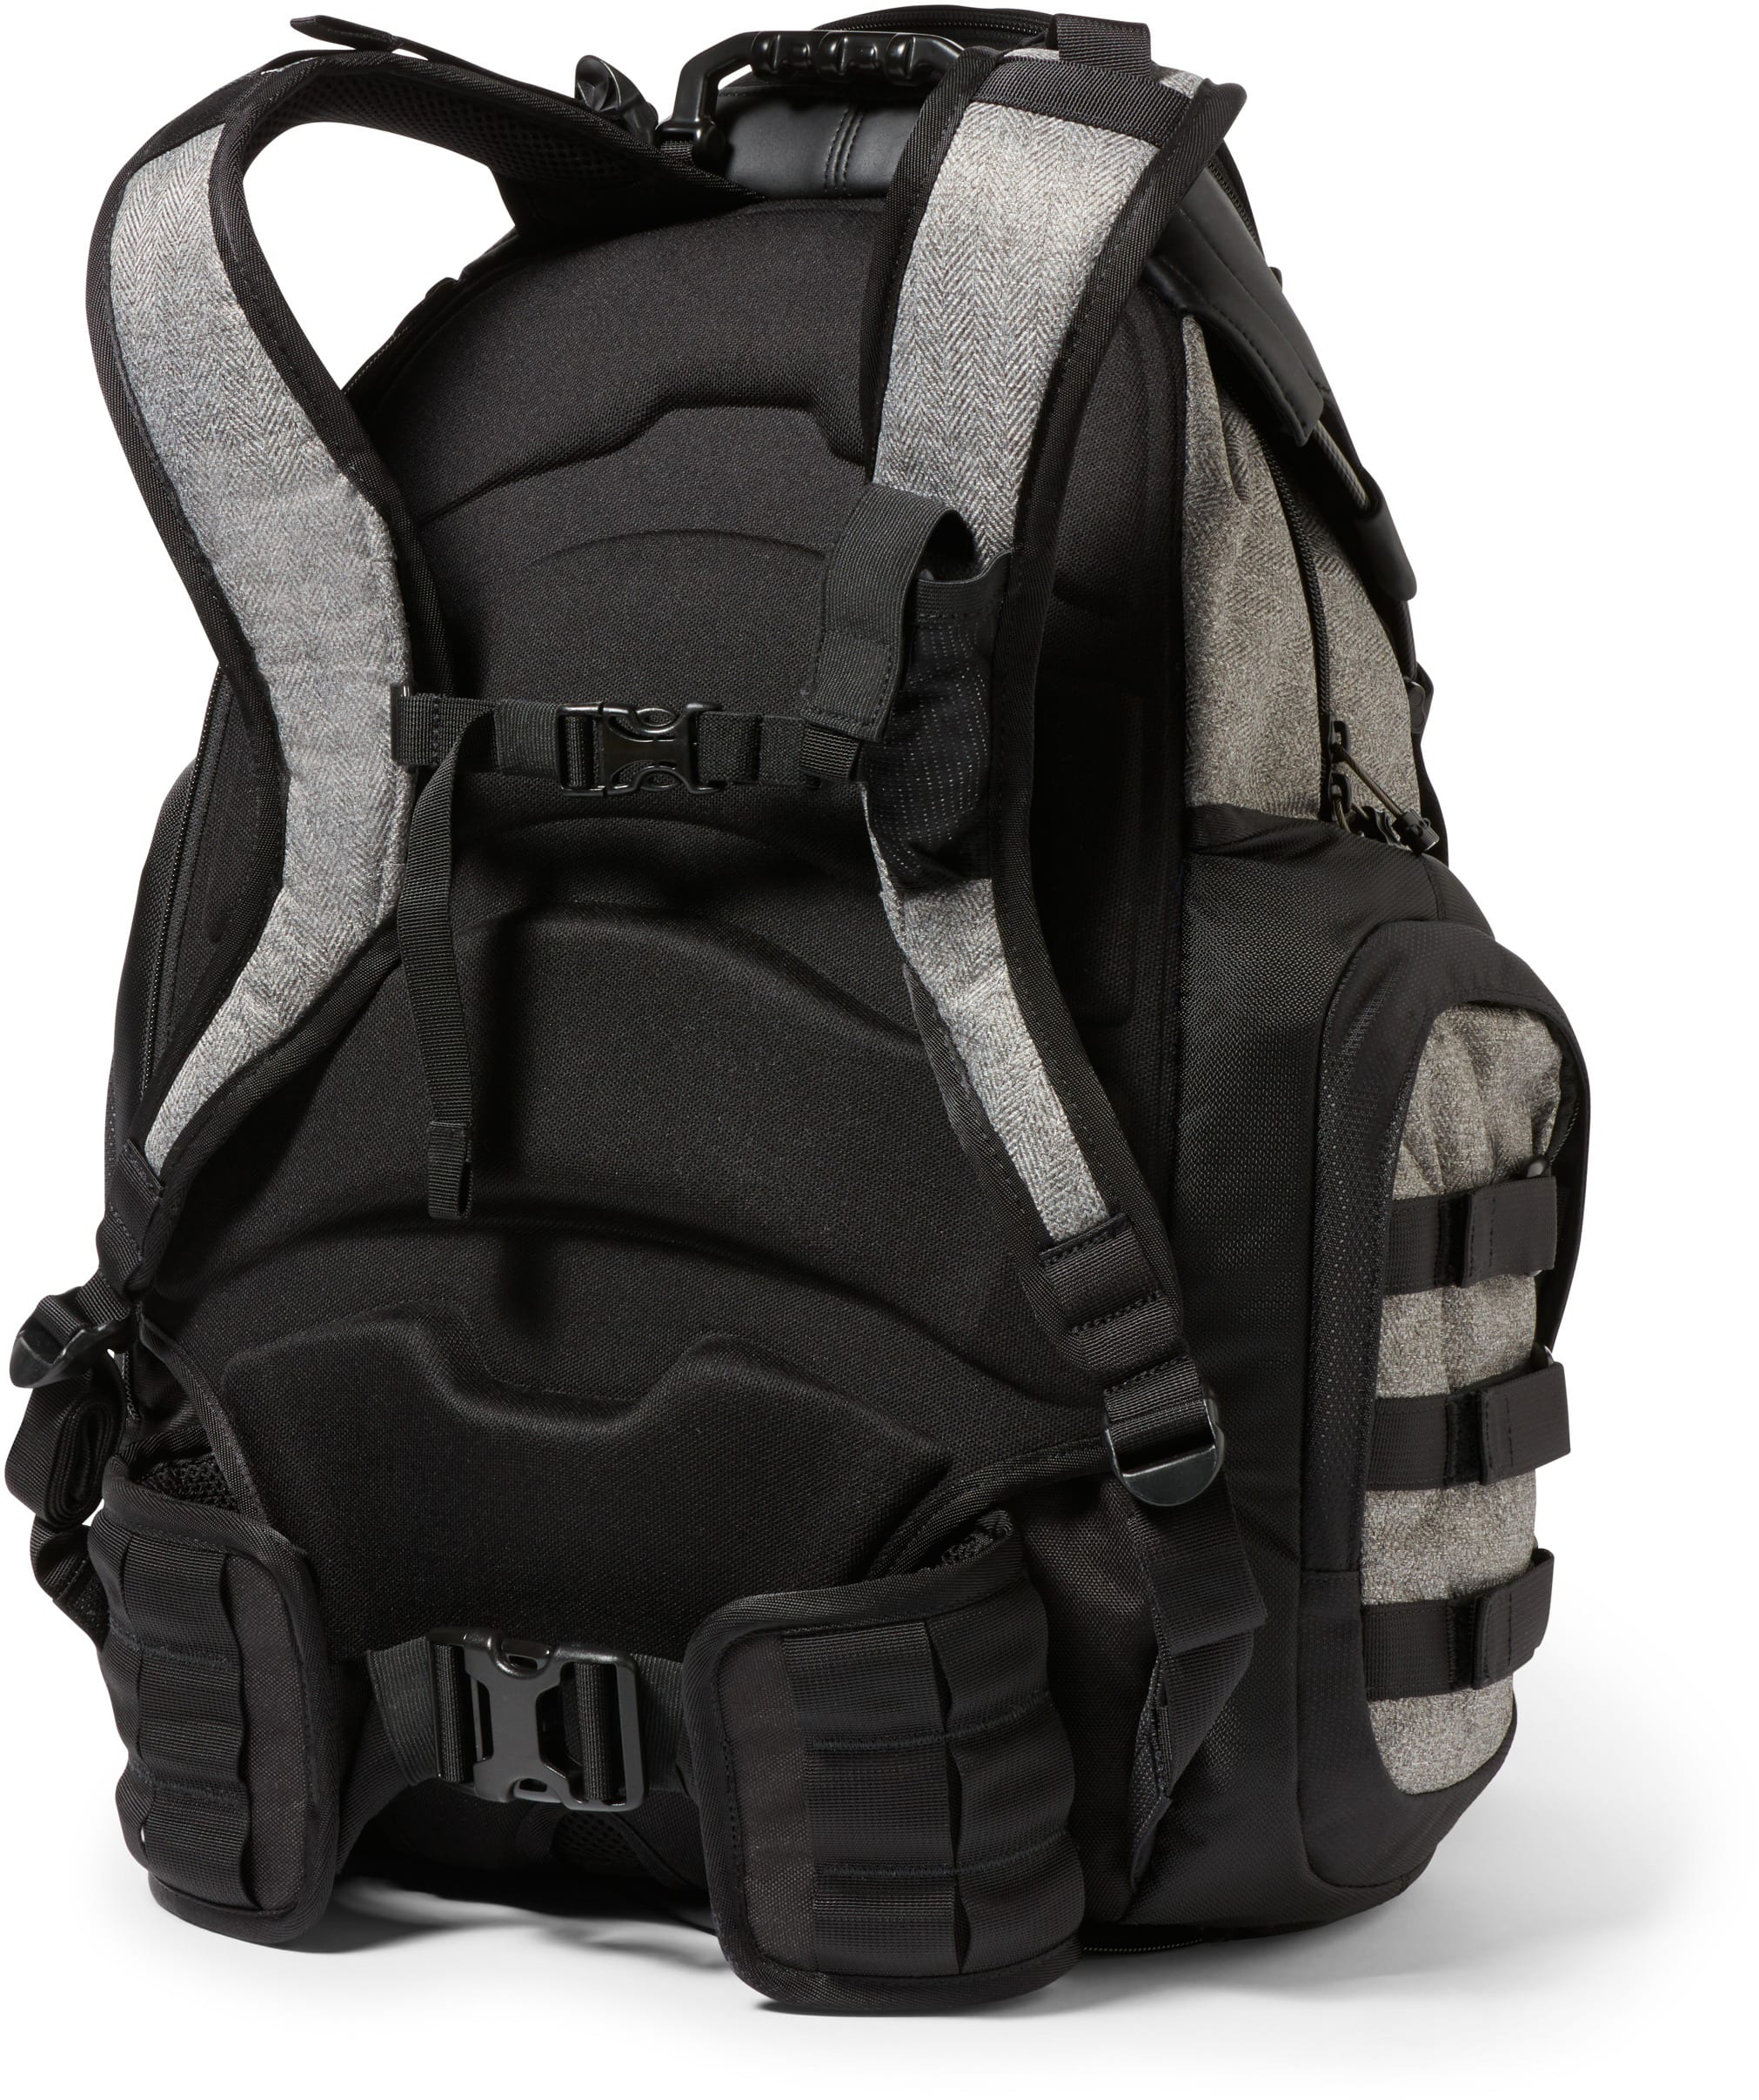 oakley kitchen sink backpack review how much does it cost to replace cabinets 2018